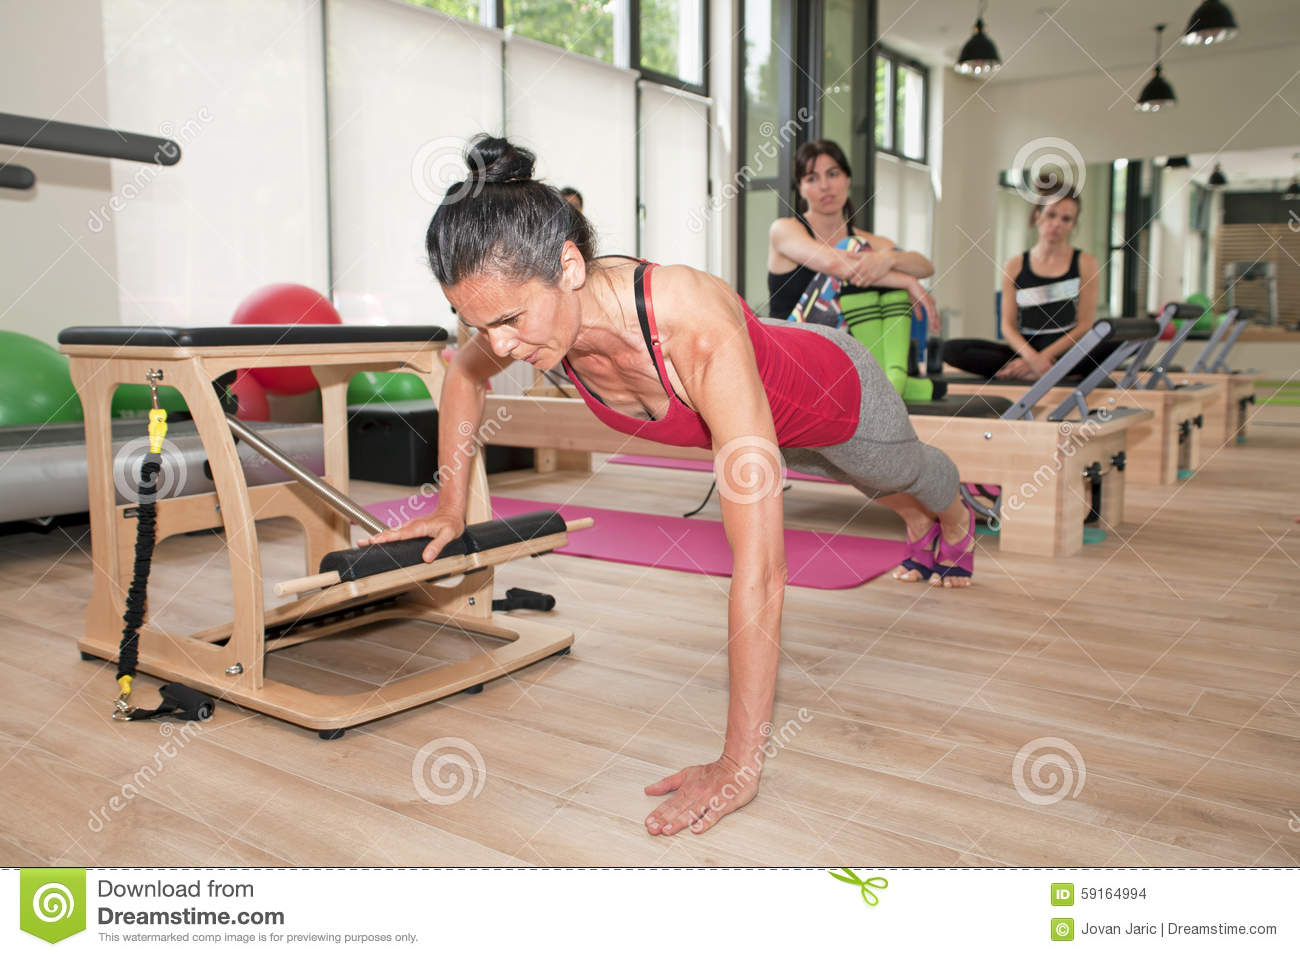 Stock images pilates on chair image 59164994 for Gimnasio pilates